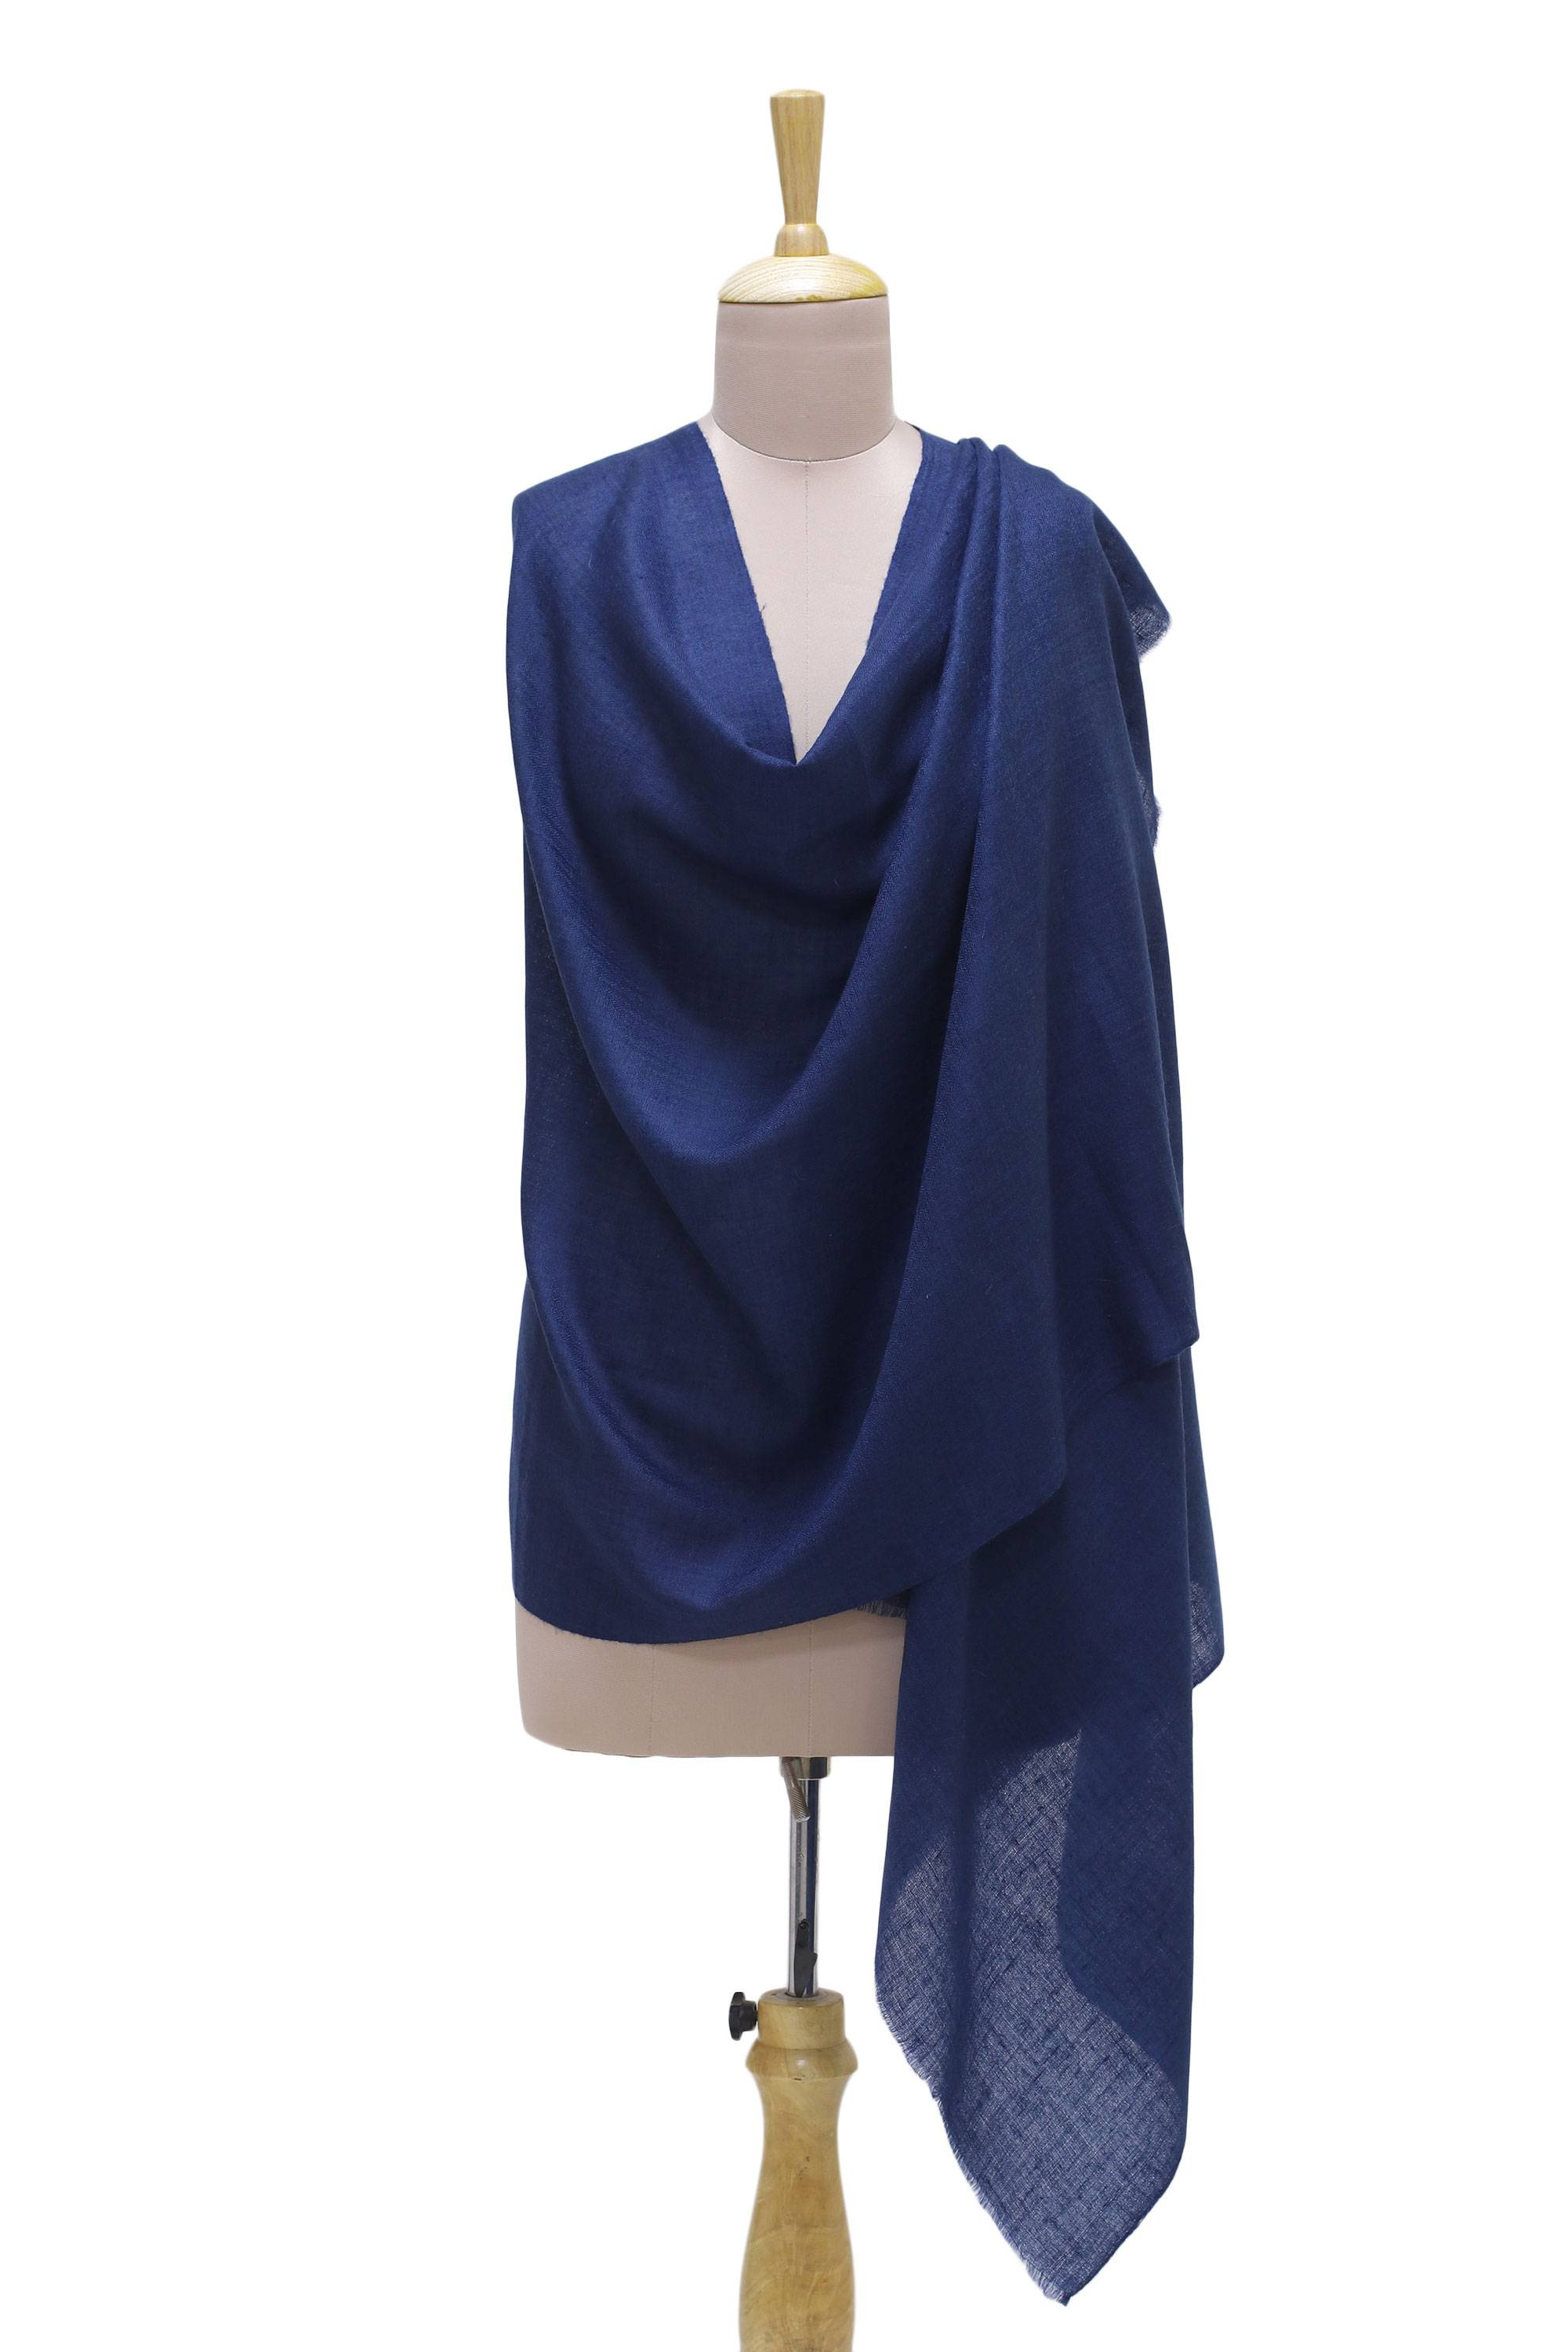 b78a4d504 UNICEF Market   Handwoven Azure Pashmina Cashmere Wool Shawl from ...